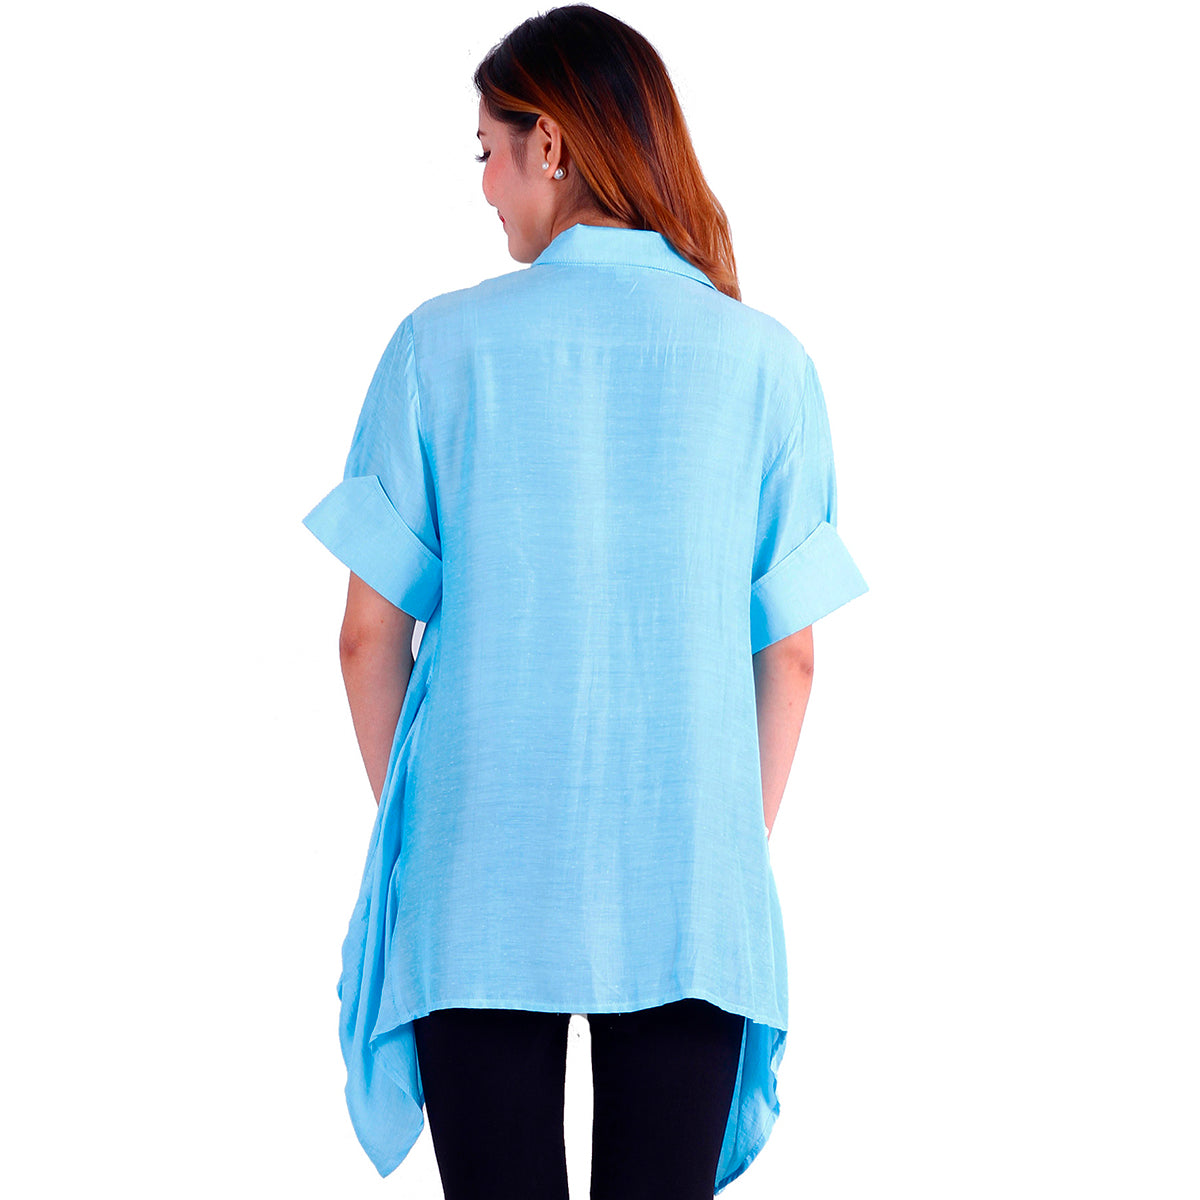 women's silk button shirt summer light blue